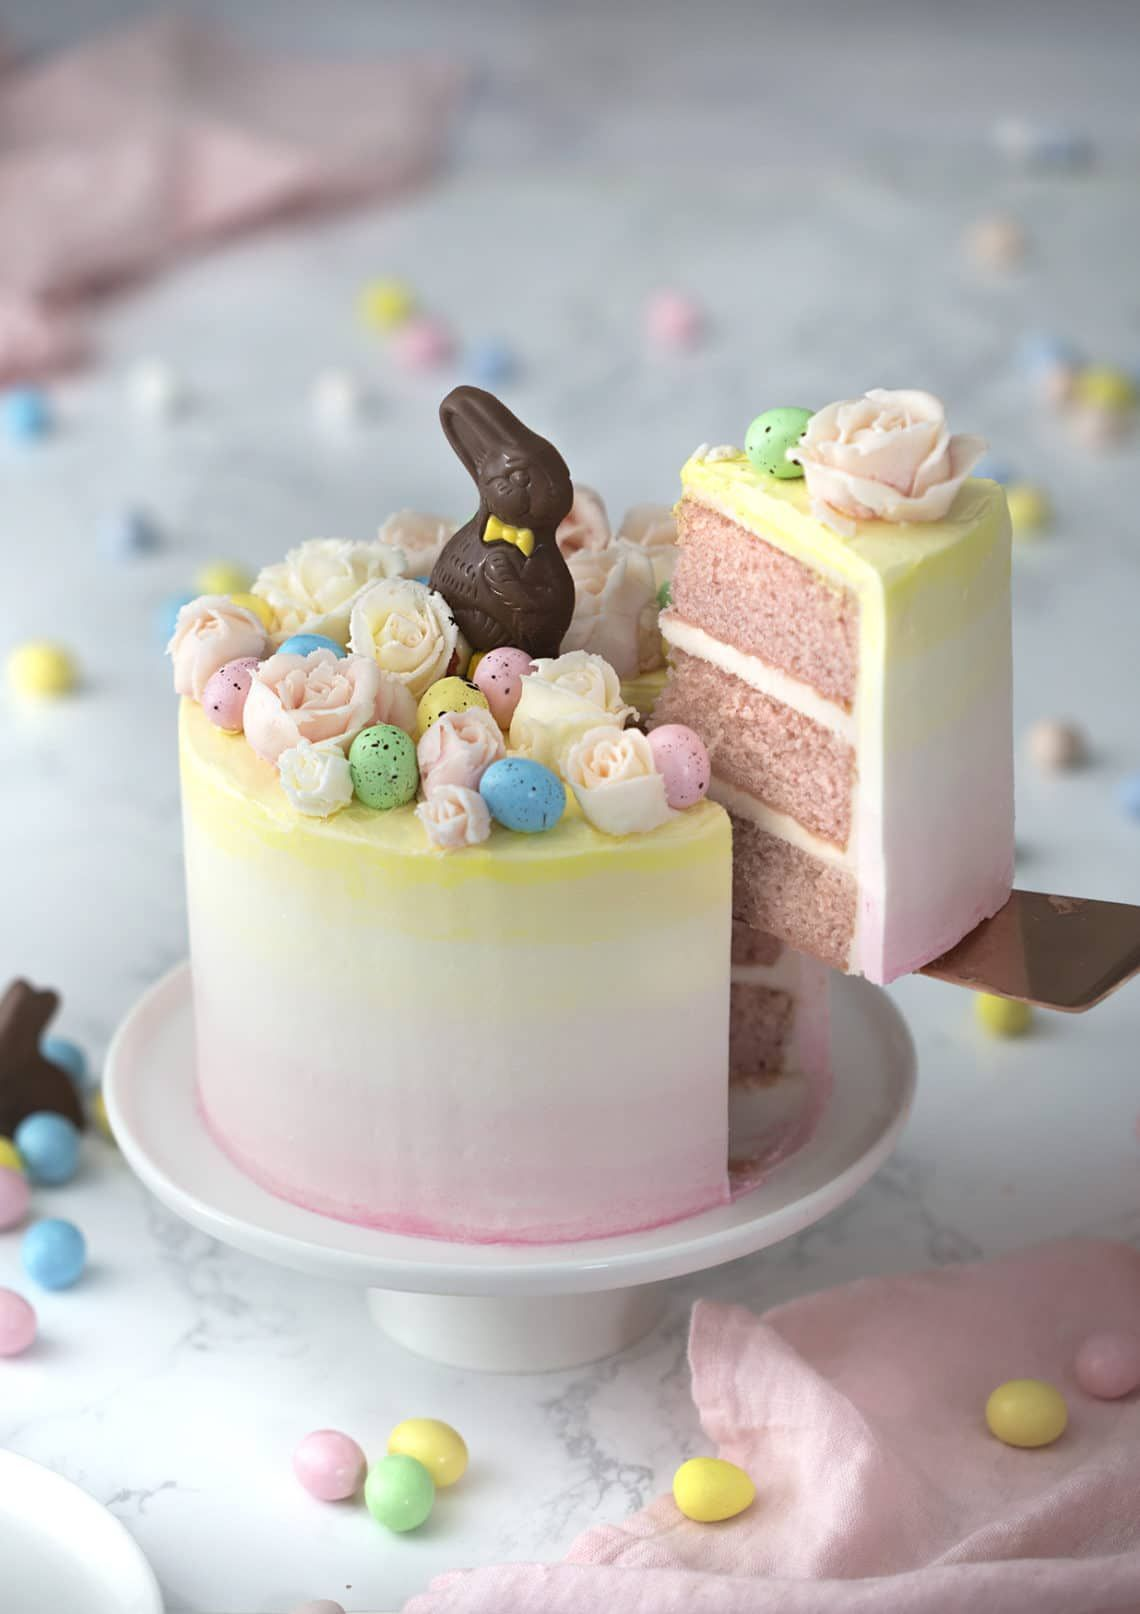 Make a sweet bunny cake for your Easter party this year with one of these clever ideas. #eastercake #easterrecipes #easterdesserts